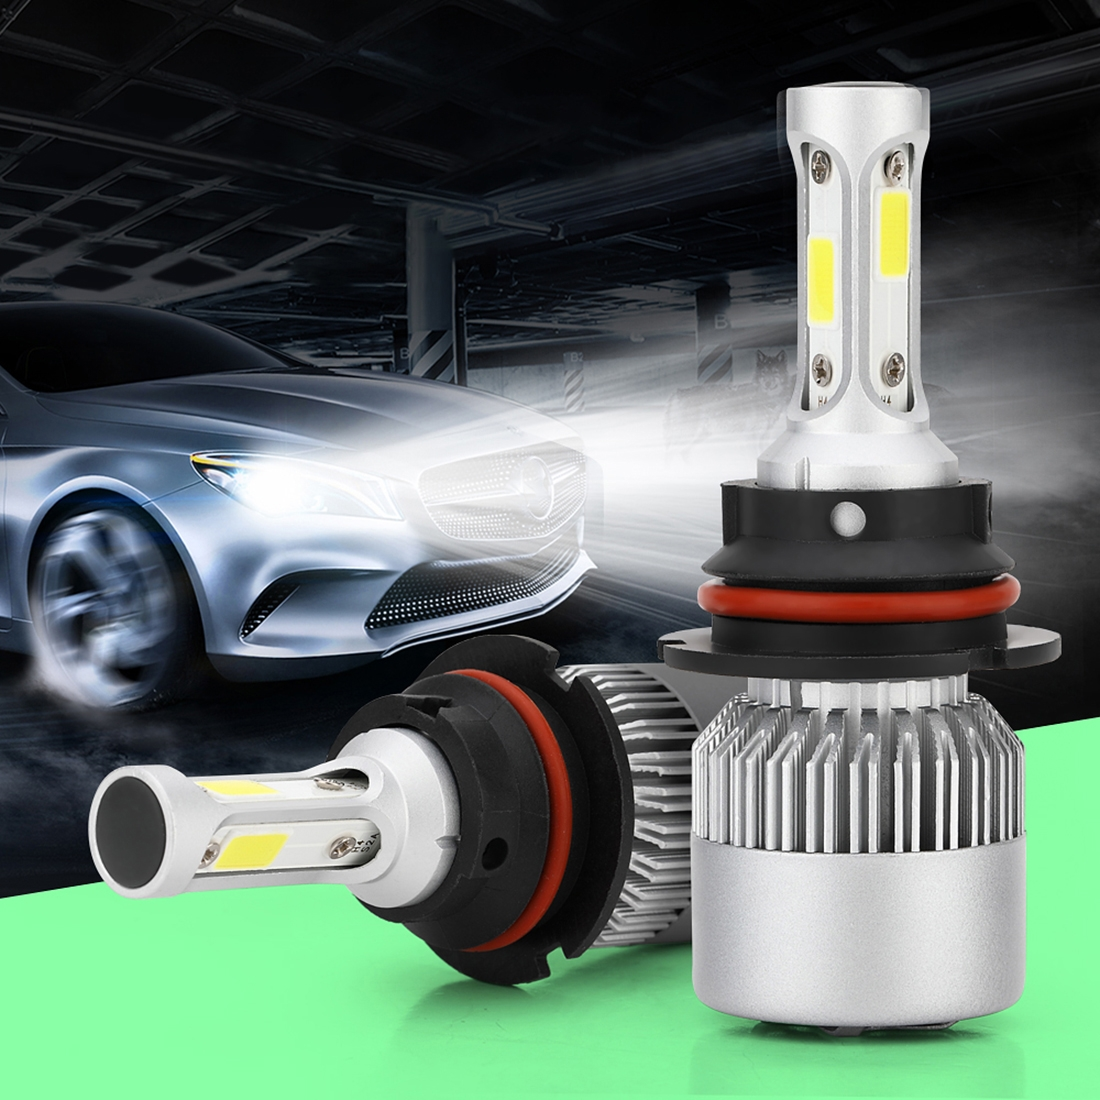 2 PCS S2 9007 / HB5 18W 6000K 1800LM IP65 2 COB LED Car Headlight Lamps, DC 9-30V (Cool White)